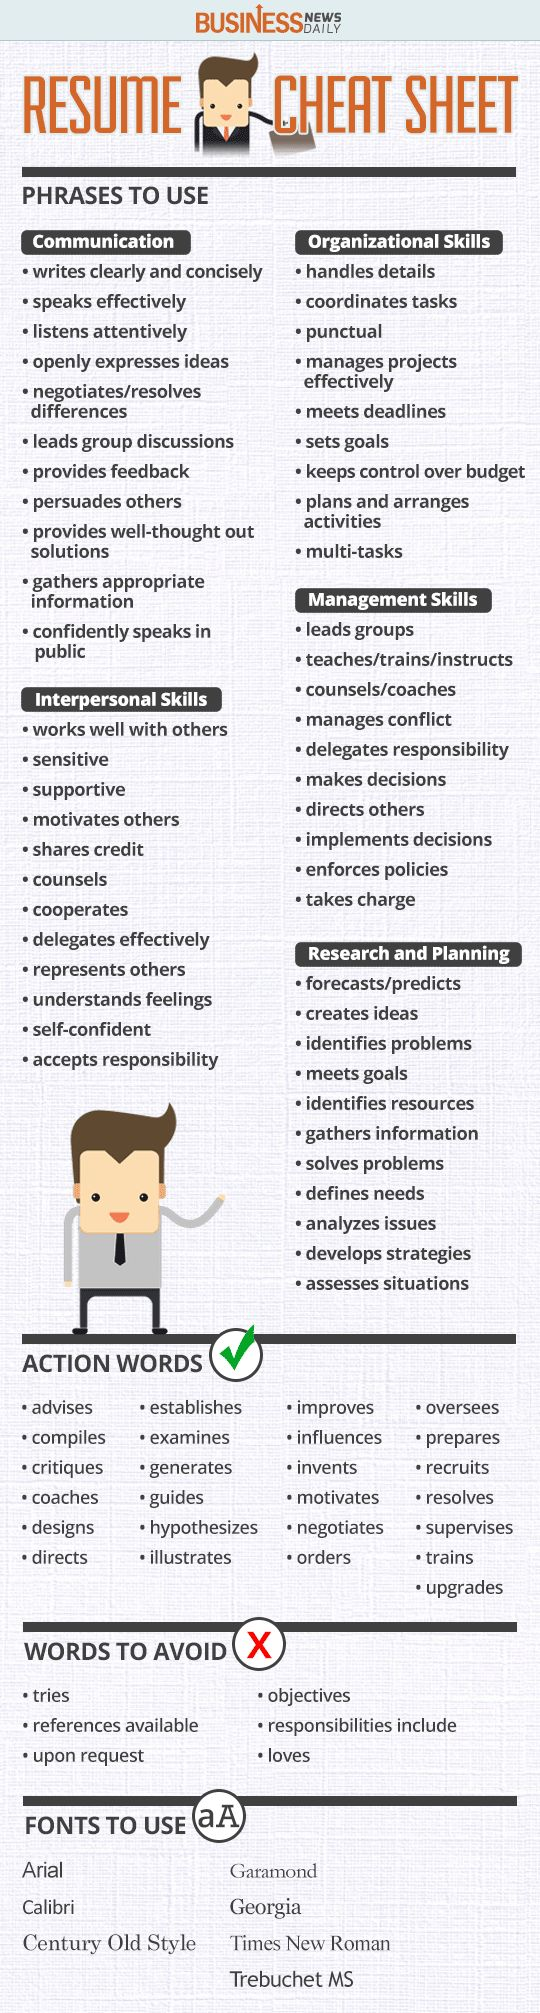 Opposenewapstandardsus  Fascinating  Ideas About Resume On Pinterest  Cv Format Resume Cv And  With Magnificent Resume Cheat Sheet Infographic Andrews Almost Done With A Complete Unit On Employment Which With Delectable Blue Sky Resumes Also Attached Please Find My Resume In Addition Microsoft Word Resume Template  And Resume Synonym As Well As Resume Words To Use Additionally Photoshop Resume Template From Pinterestcom With Opposenewapstandardsus  Magnificent  Ideas About Resume On Pinterest  Cv Format Resume Cv And  With Delectable Resume Cheat Sheet Infographic Andrews Almost Done With A Complete Unit On Employment Which And Fascinating Blue Sky Resumes Also Attached Please Find My Resume In Addition Microsoft Word Resume Template  From Pinterestcom